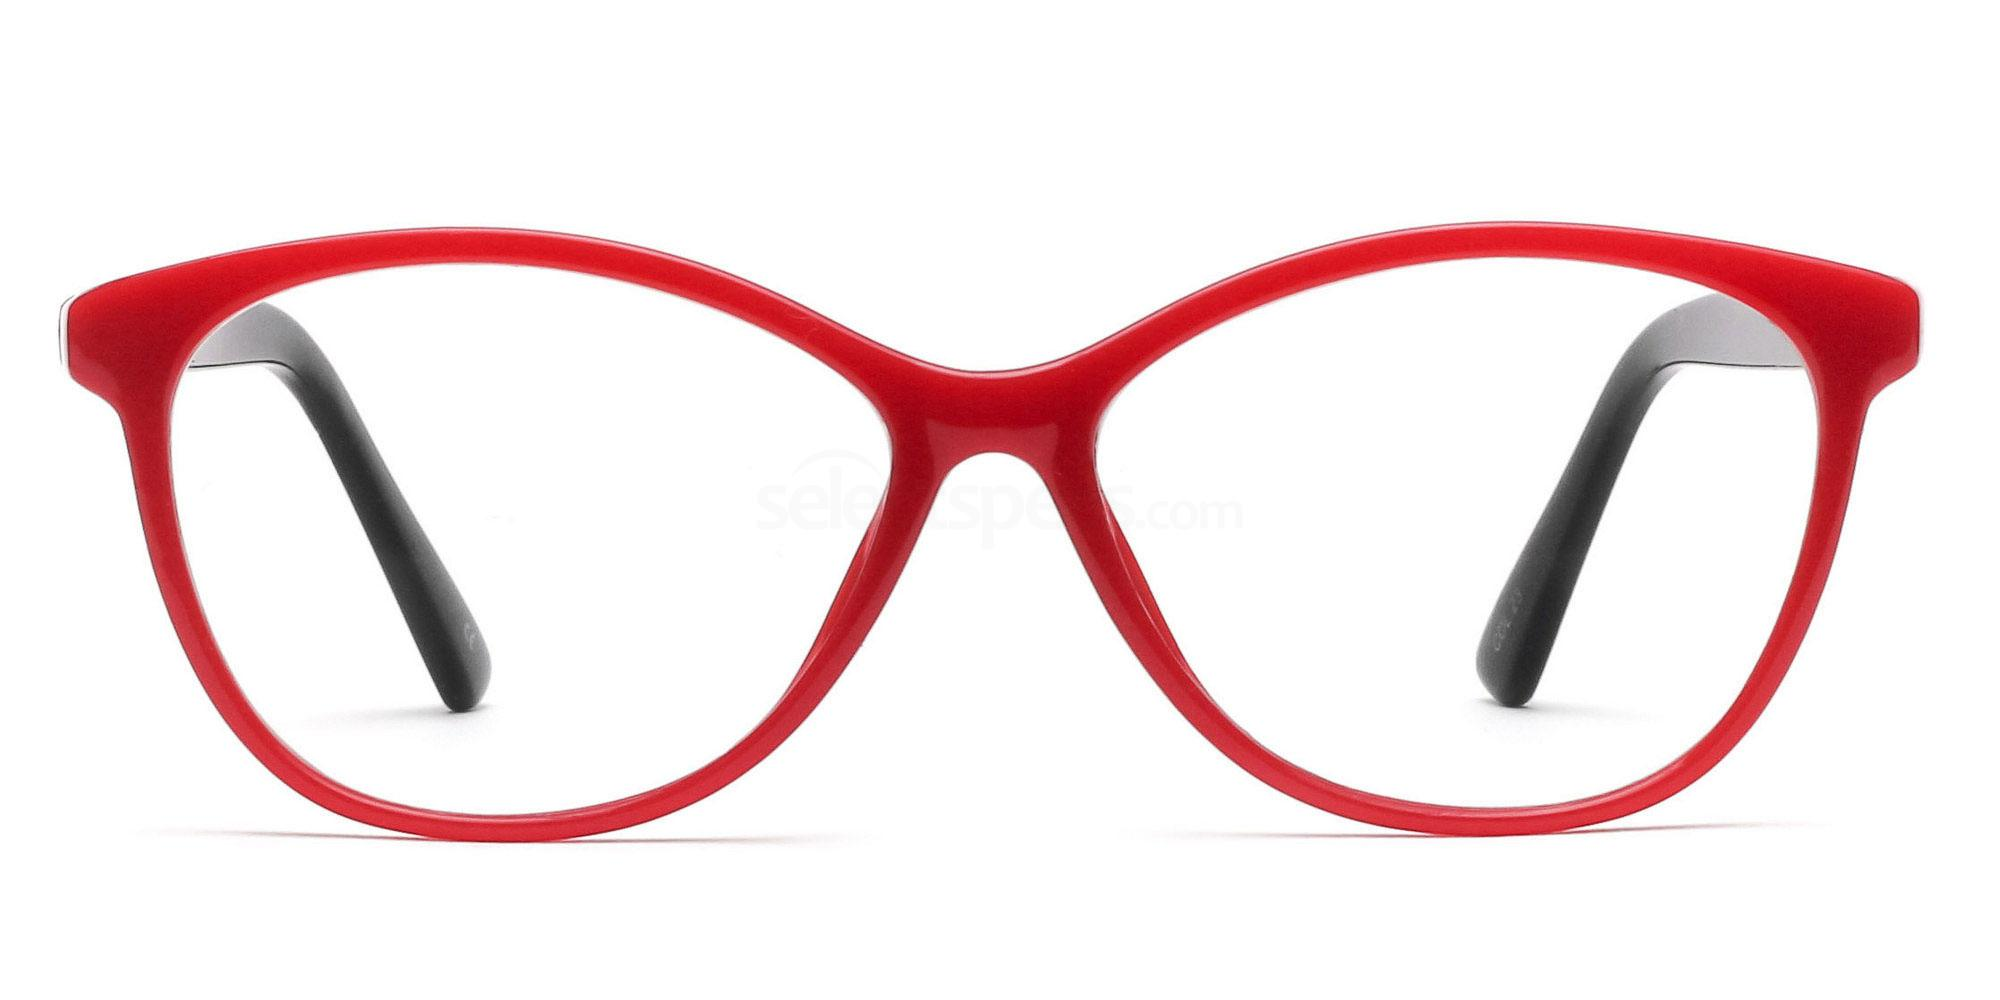 COL.23 2439 - Red and Black Glasses, Savannah